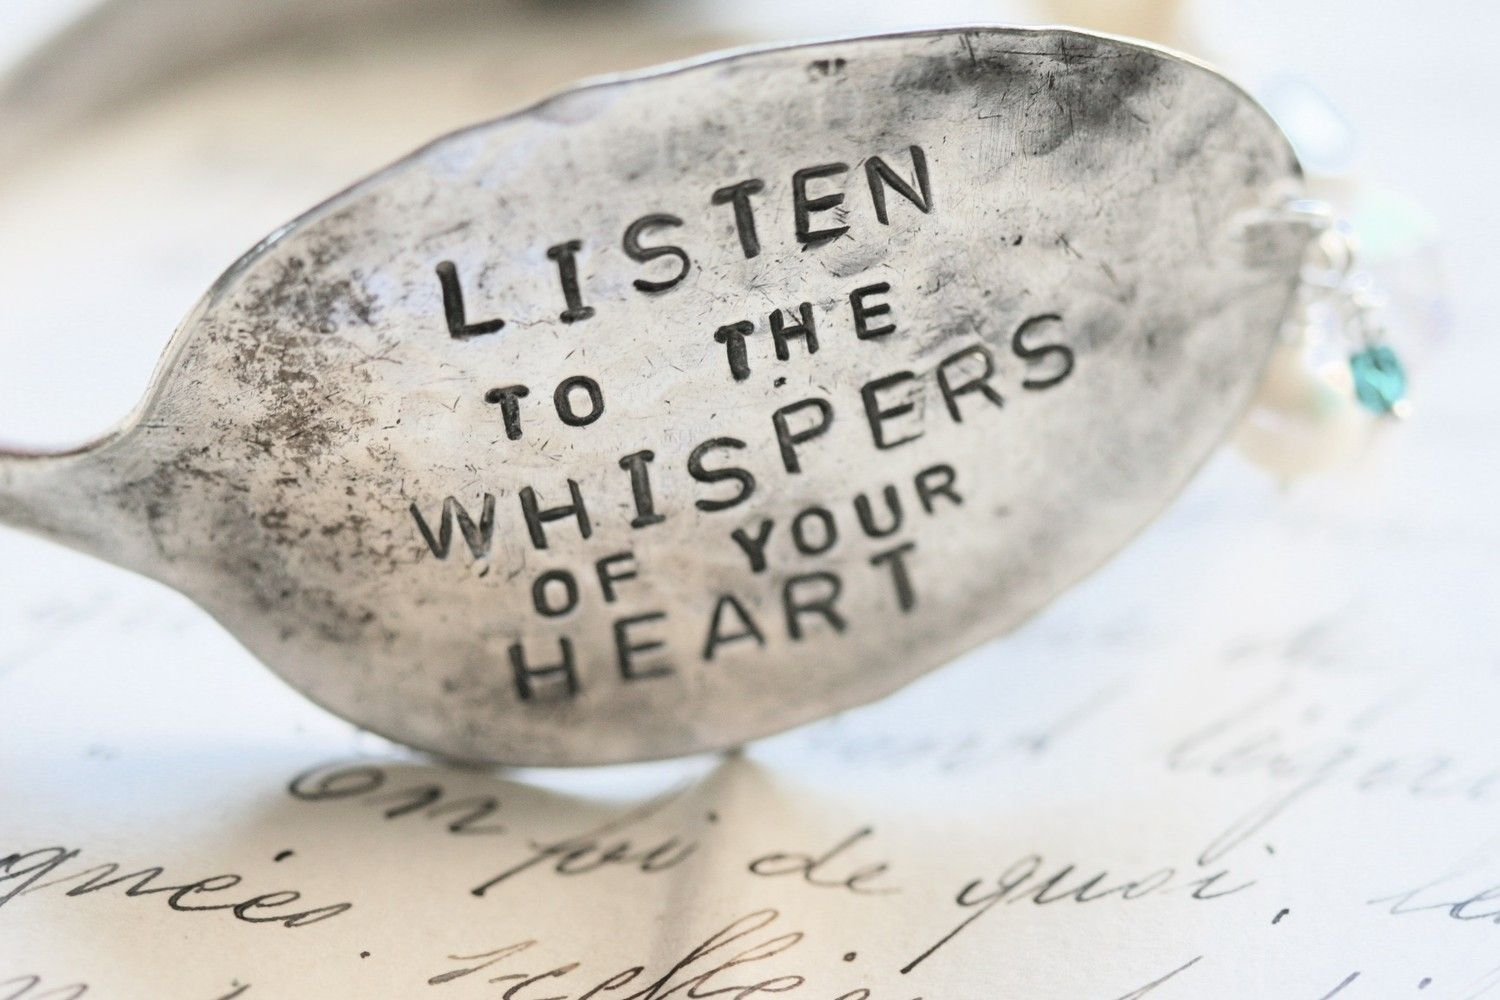 whispers of the heart quotes Whisper Of The Heart Quotes